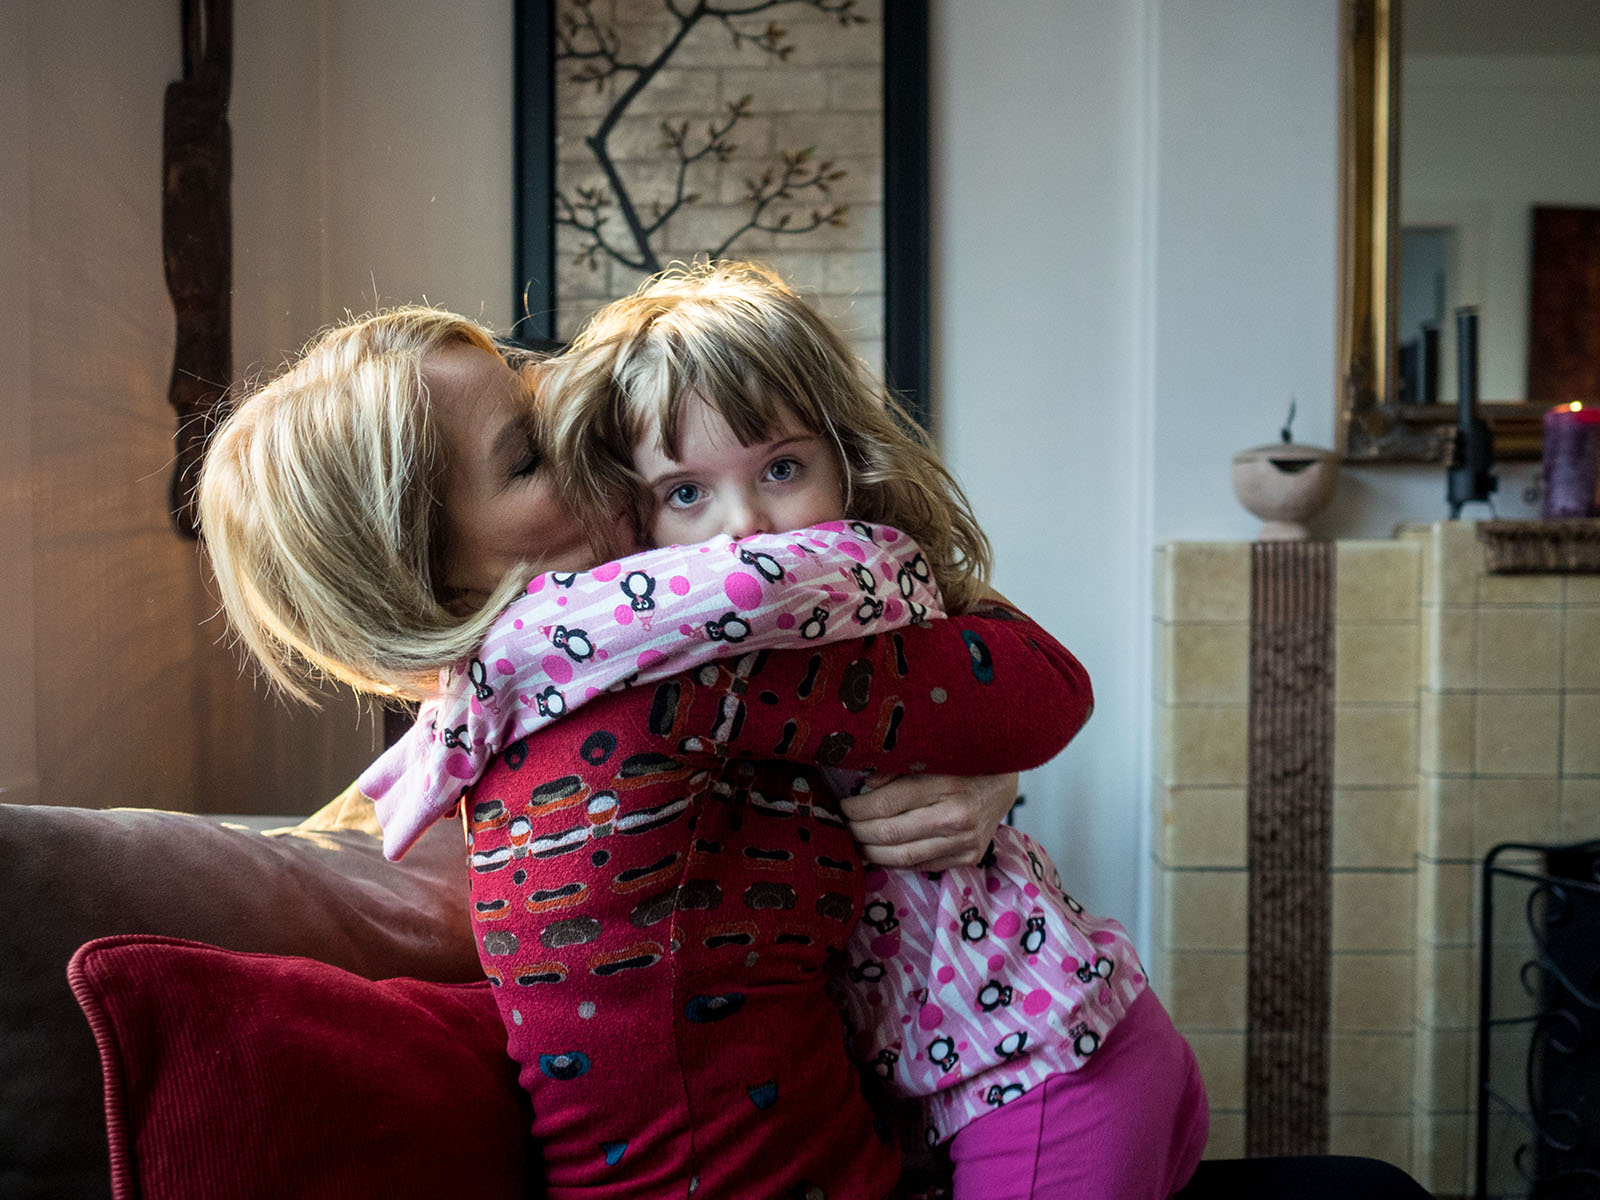 Inga Dóra and her daughter. Inga Dóra is the CEO of ICSRA   and co-authored the Icelandic Model on adolescent substance abuse prevention.